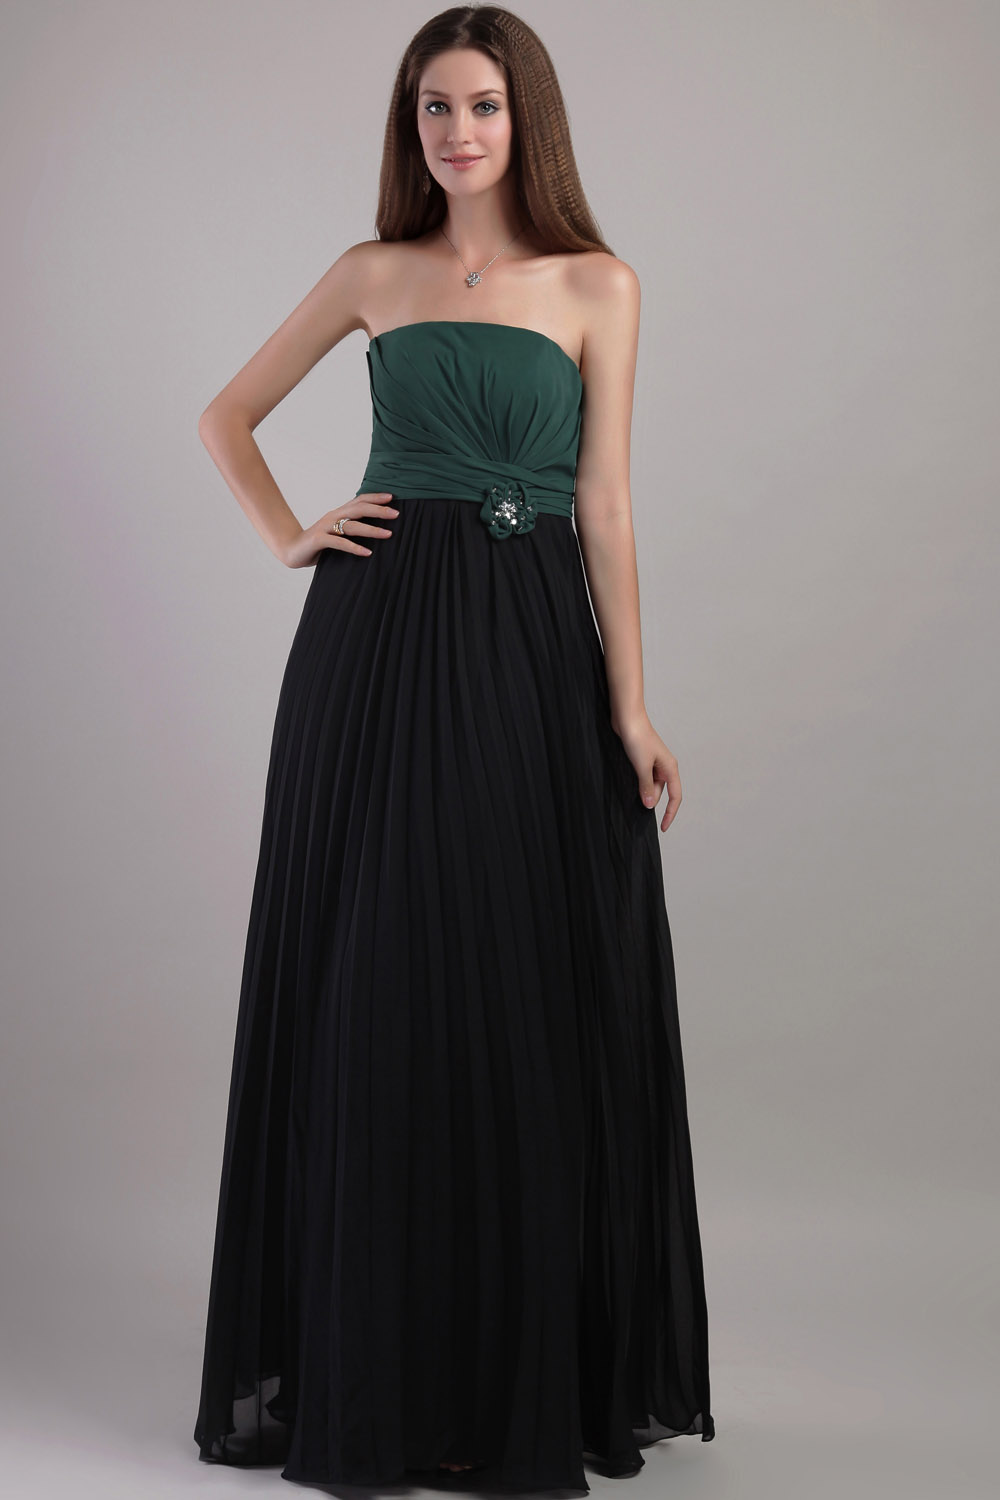 Sheath/Column Spaghetti Straps Short/Mini Taffeta Evening Dress